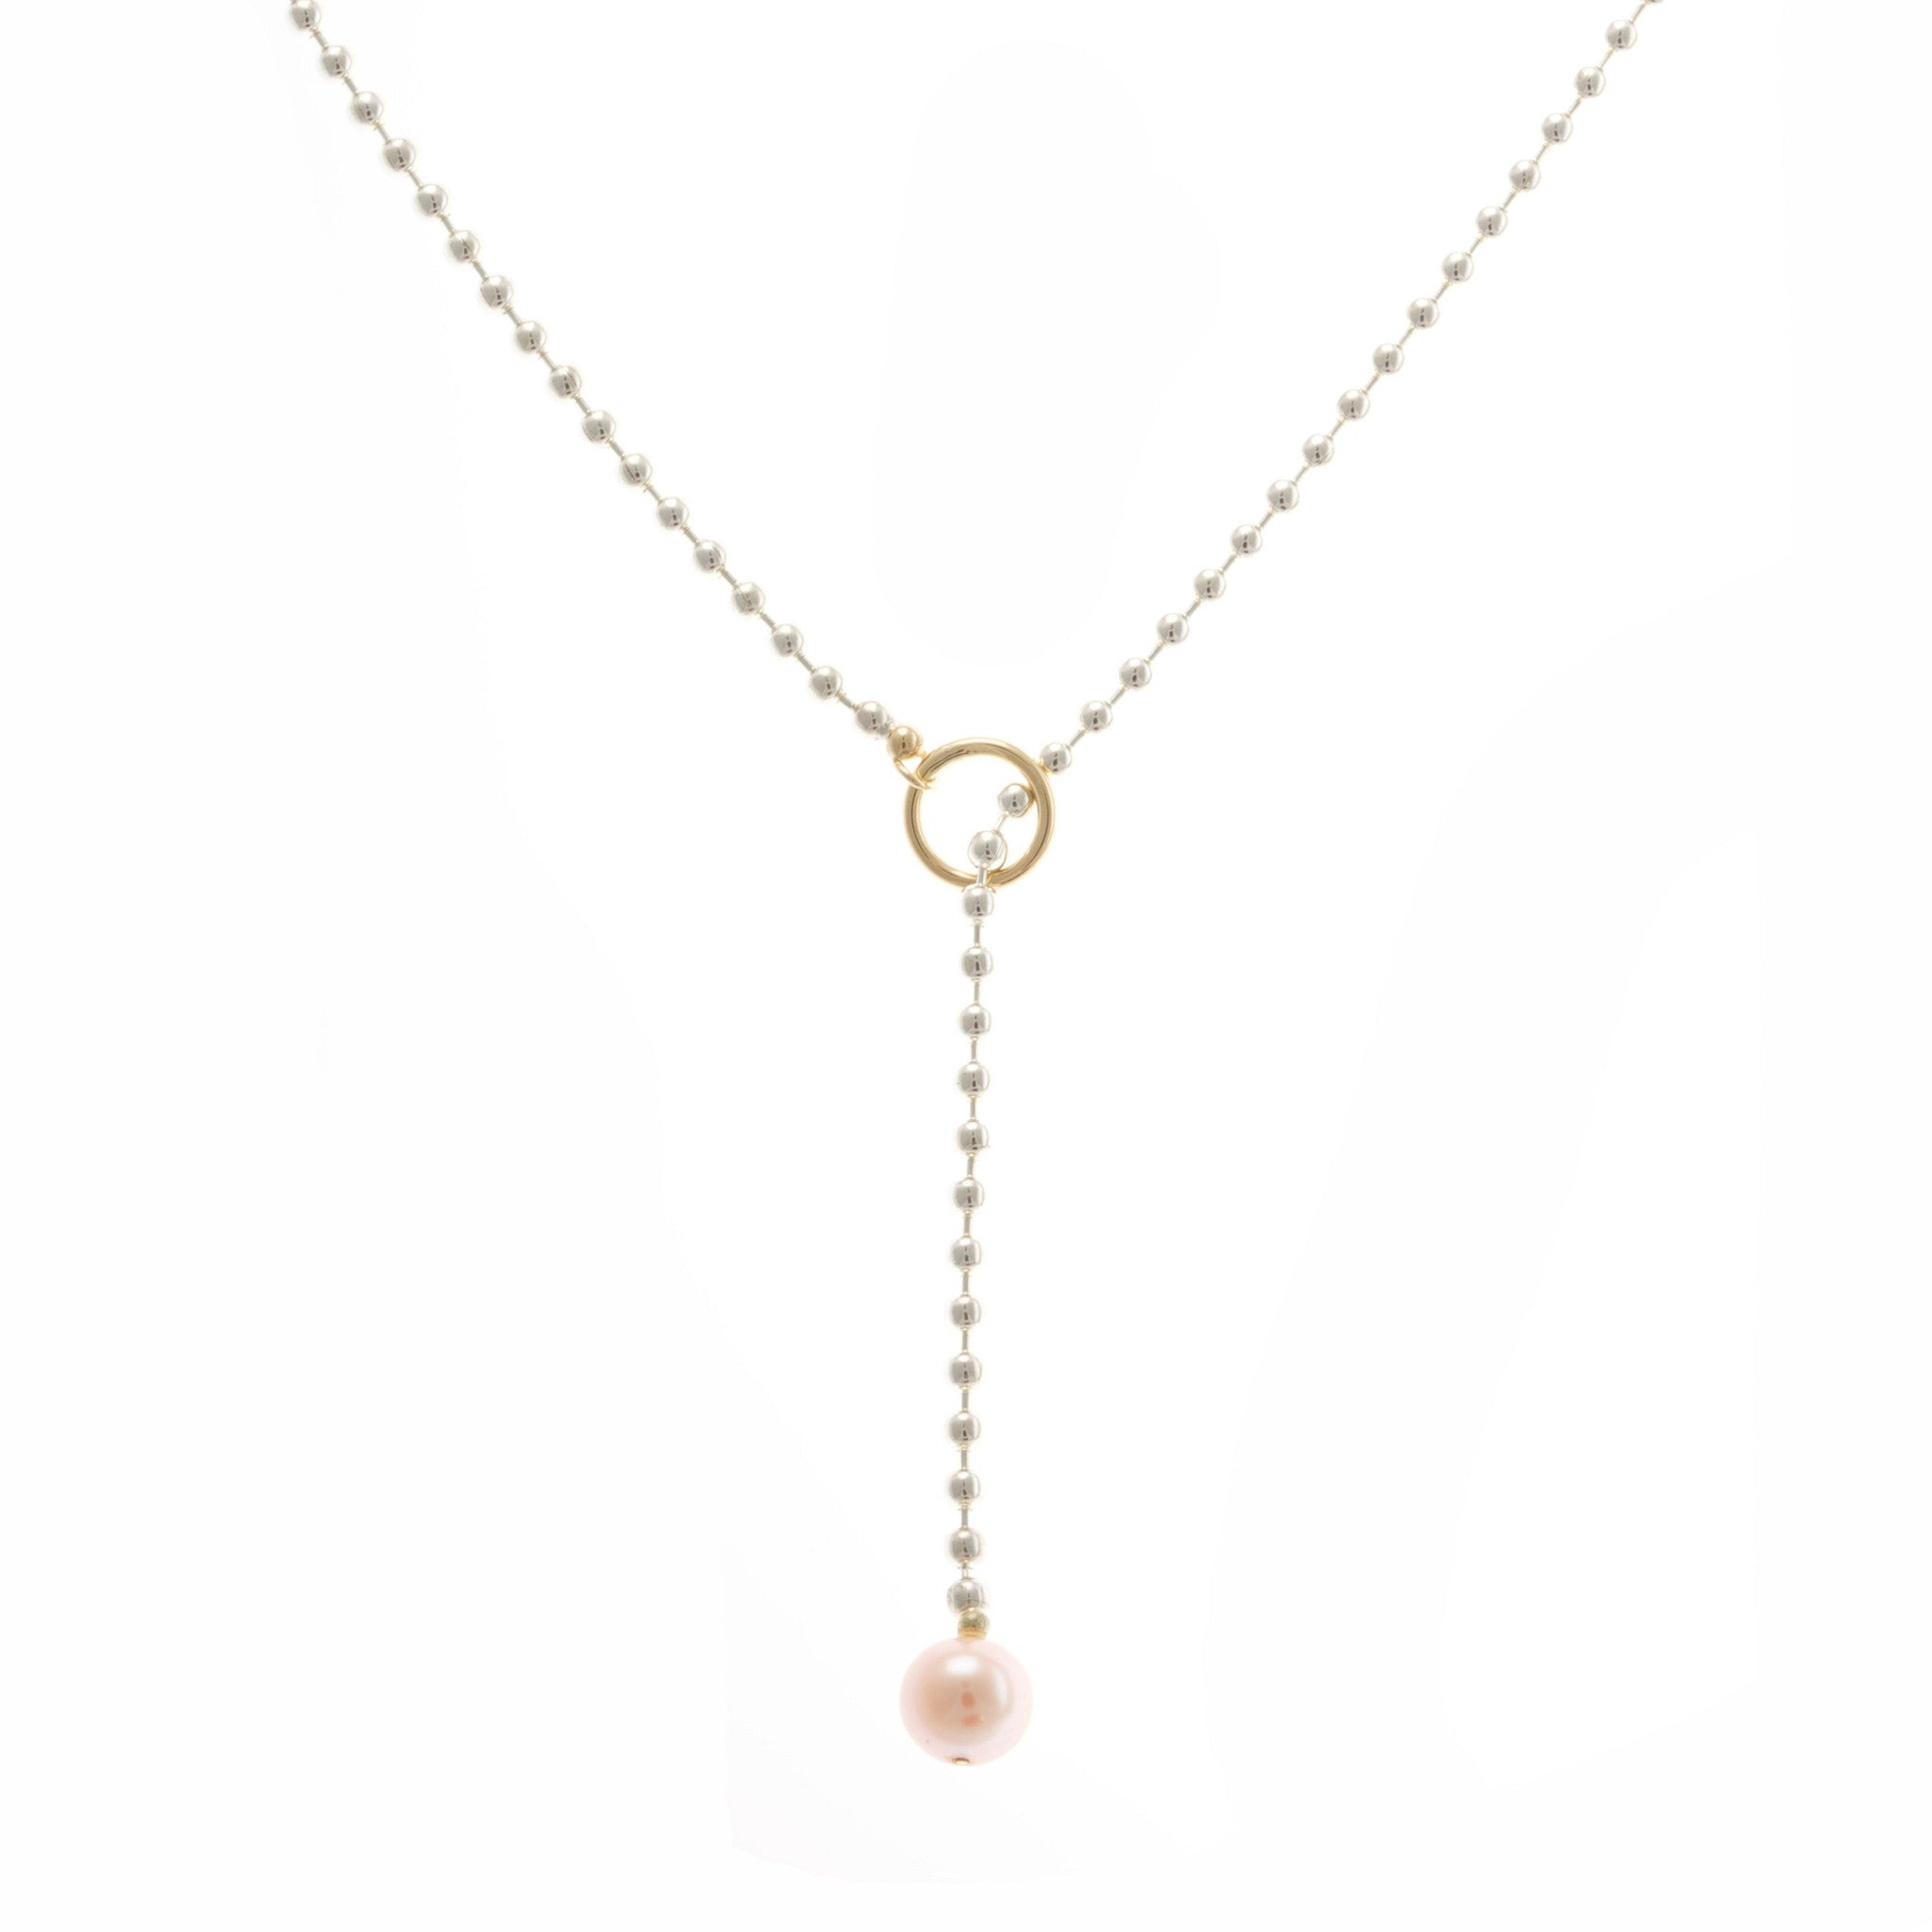 floating with water szendrei pearl a filled fresh pin necklace delicate pink julia gold chains